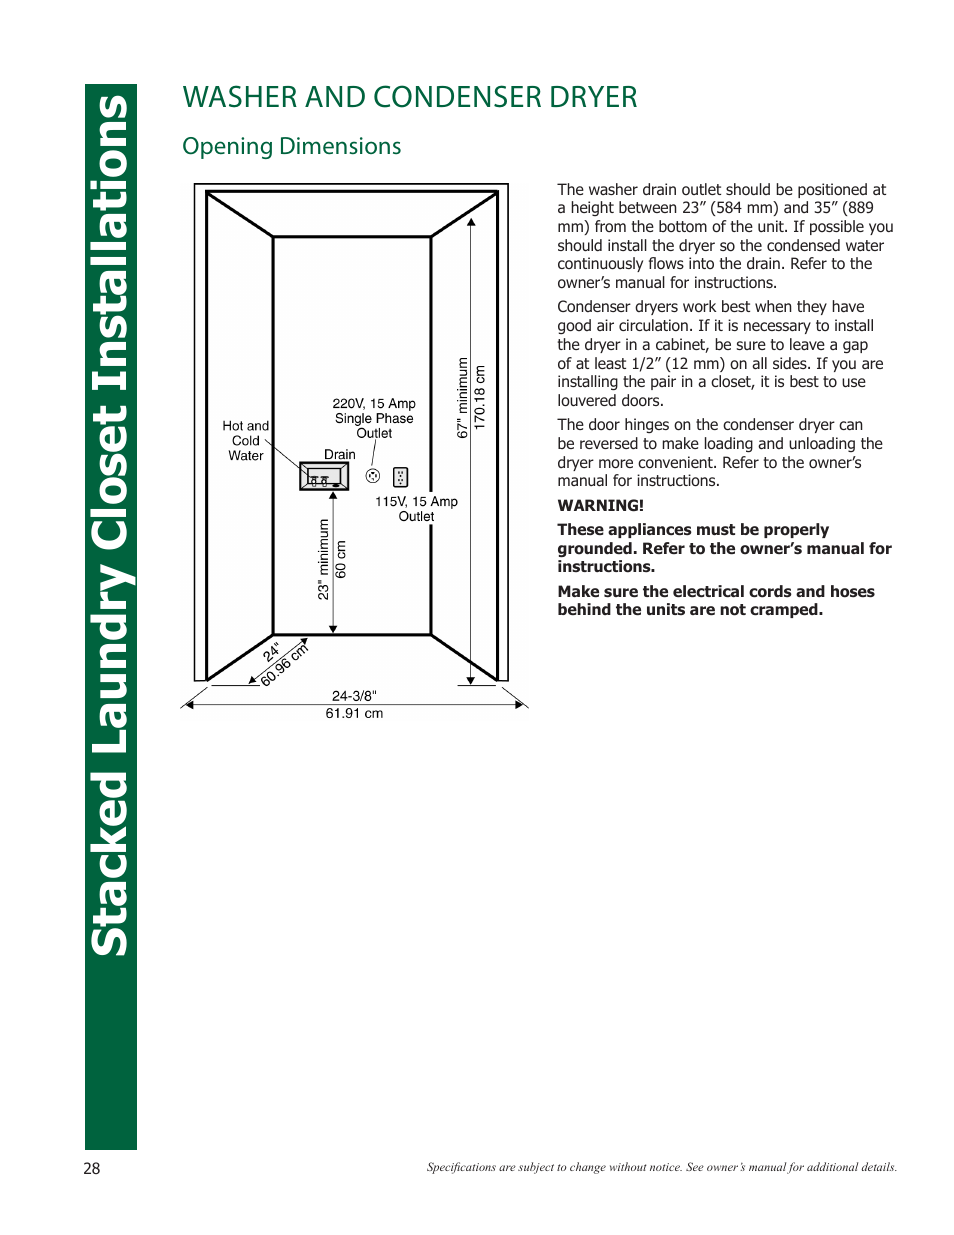 Minimum Closet Size For Stackable Washer Dryer Image Of Bathroom And Closet